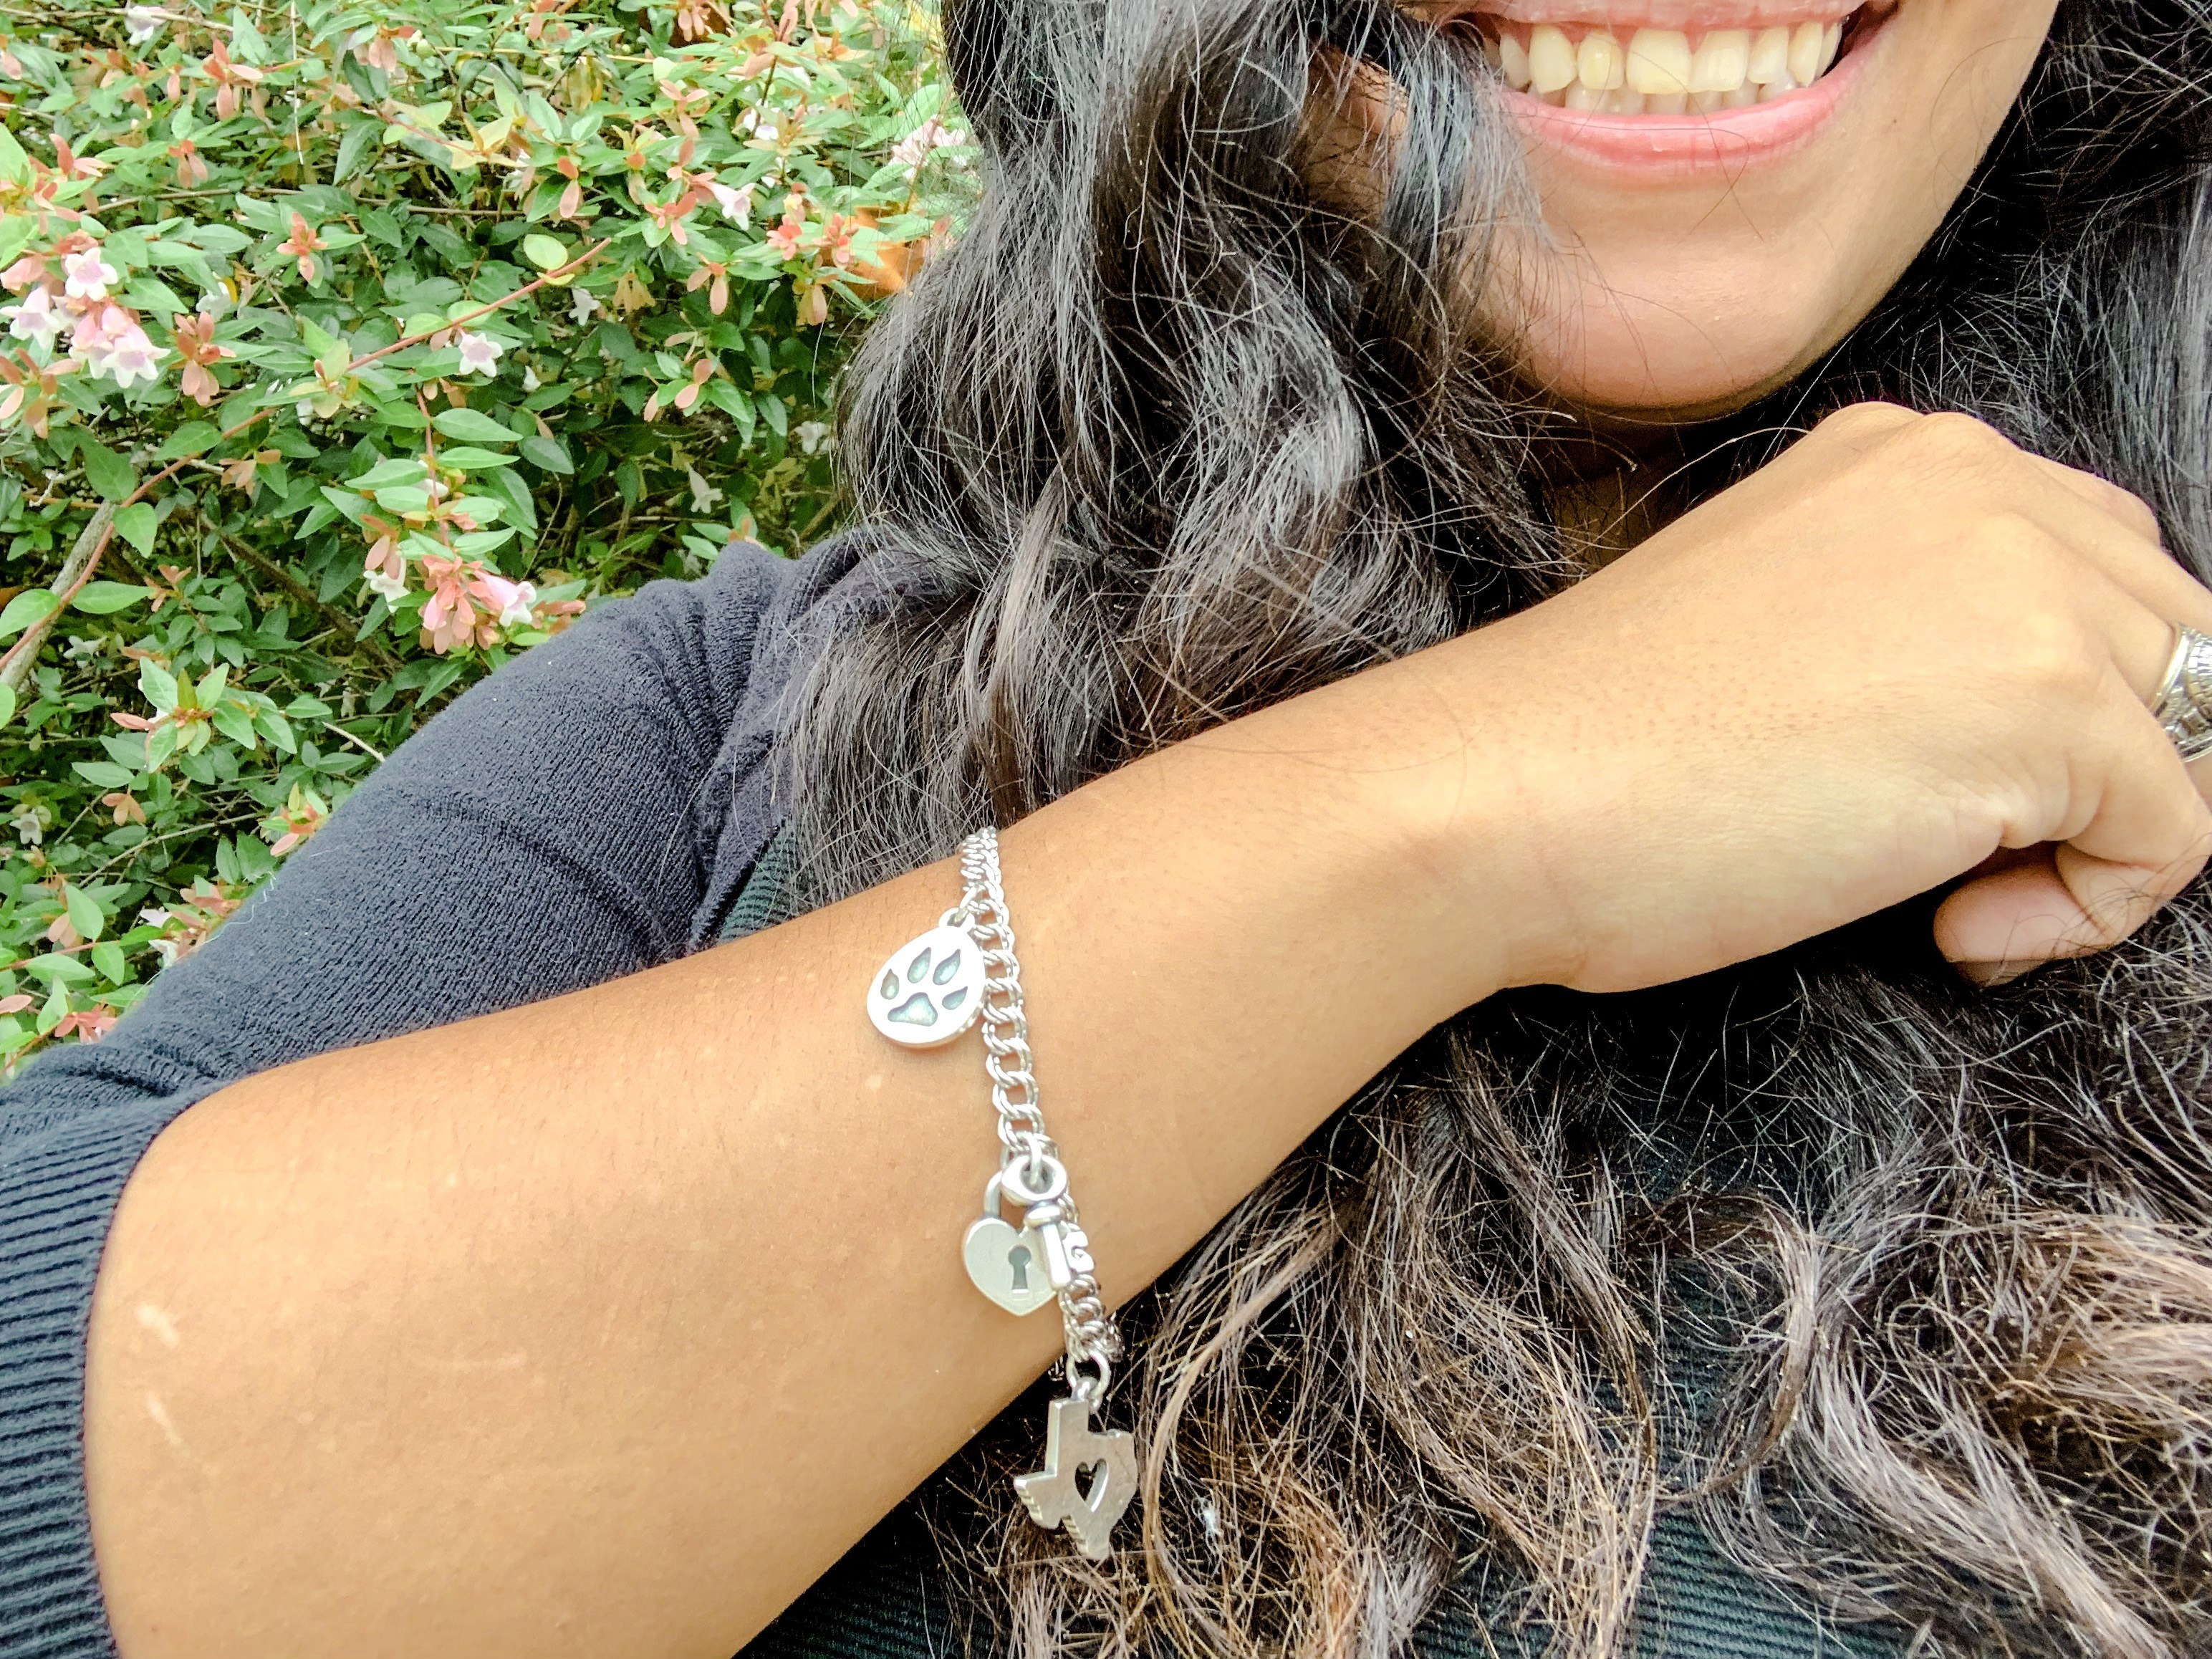 @thenuevalatina's cover photo for 'Keeping Memories with James Avery - The Nueva Latina'